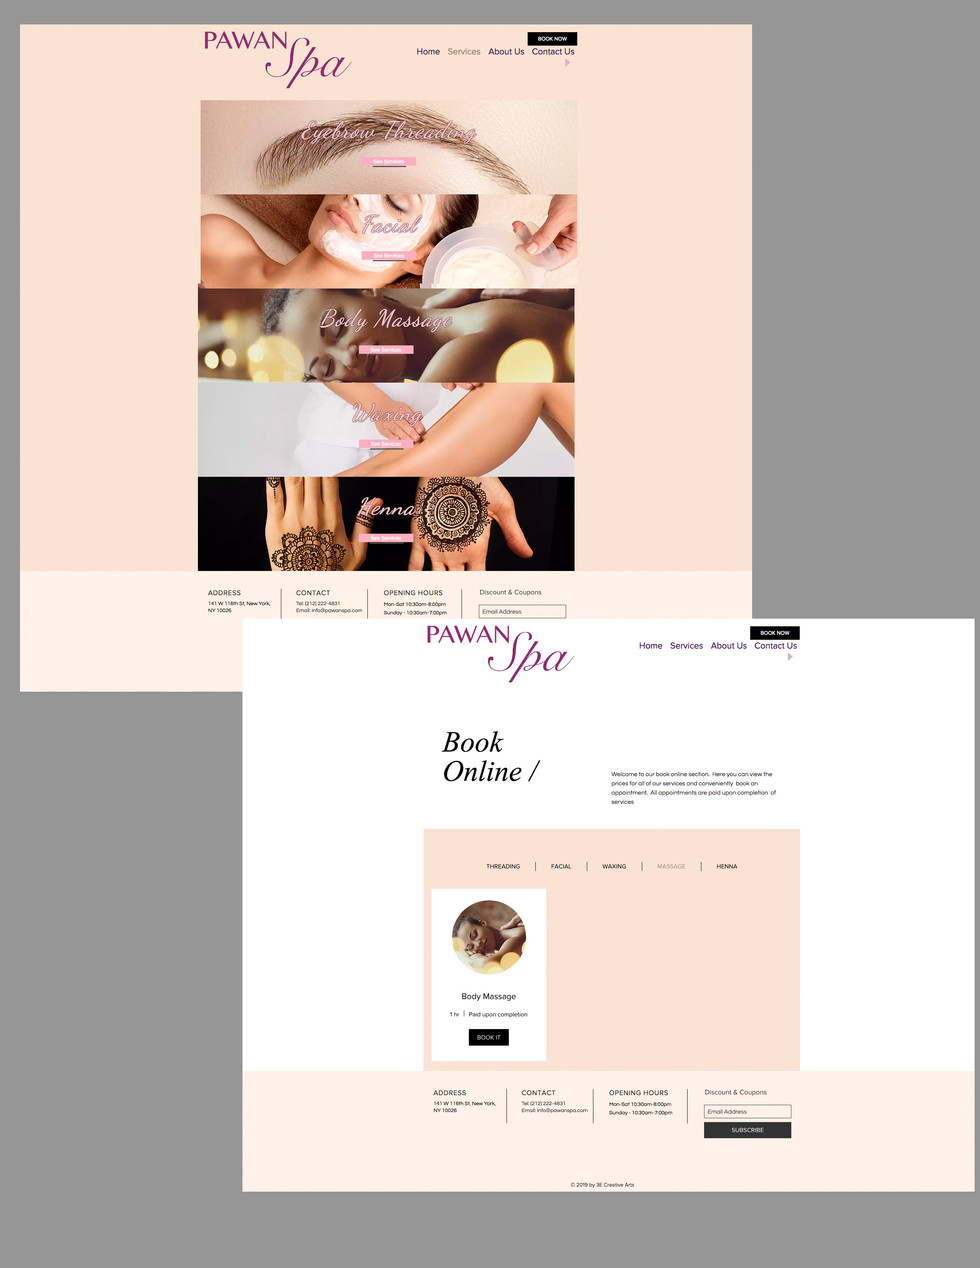 Pawan_Spa_web_layout_full_2.jpg